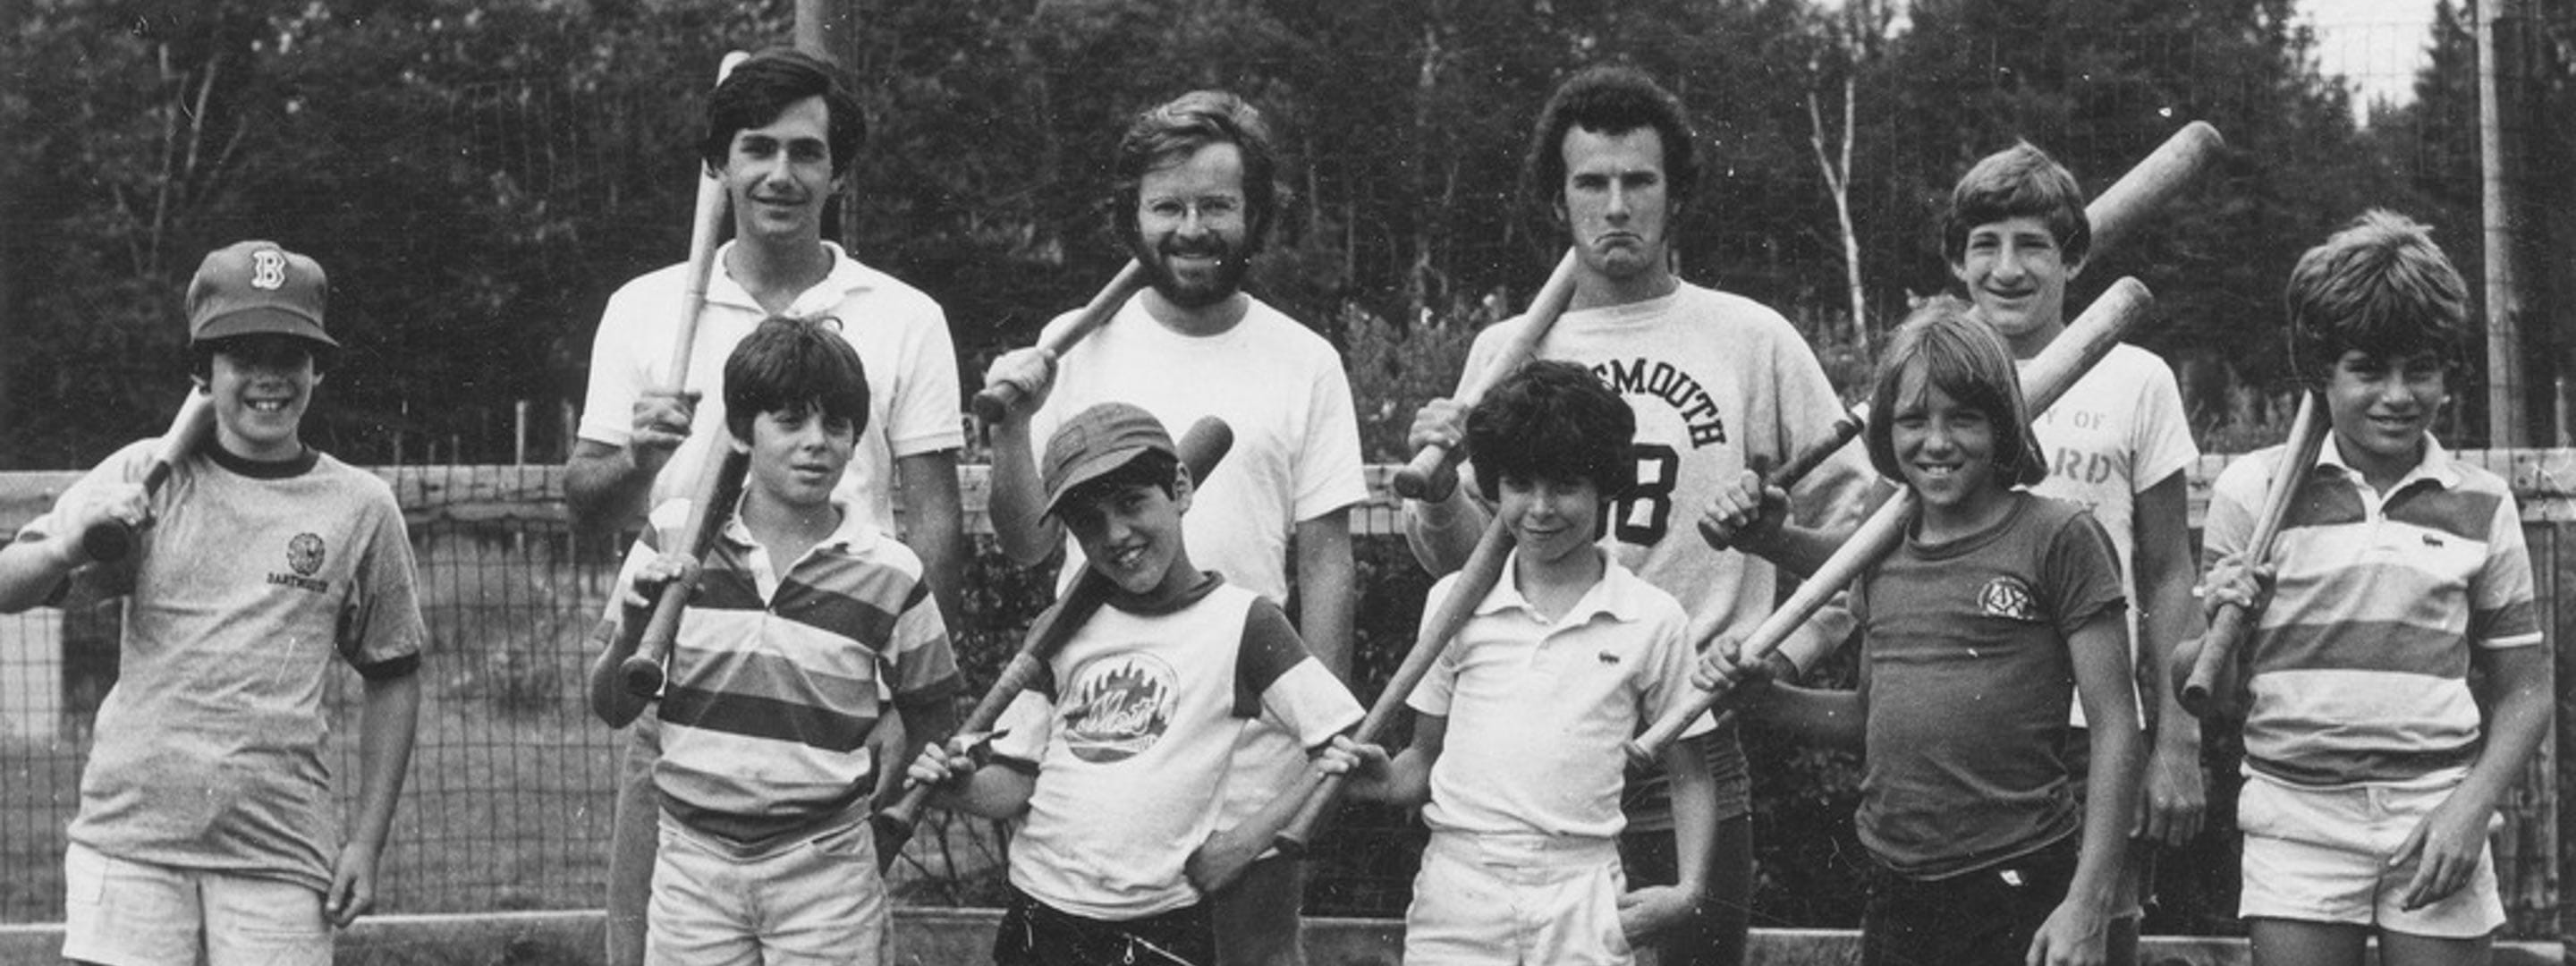 black and white picture of boy campers and counselors with baseball bats over their shoulders